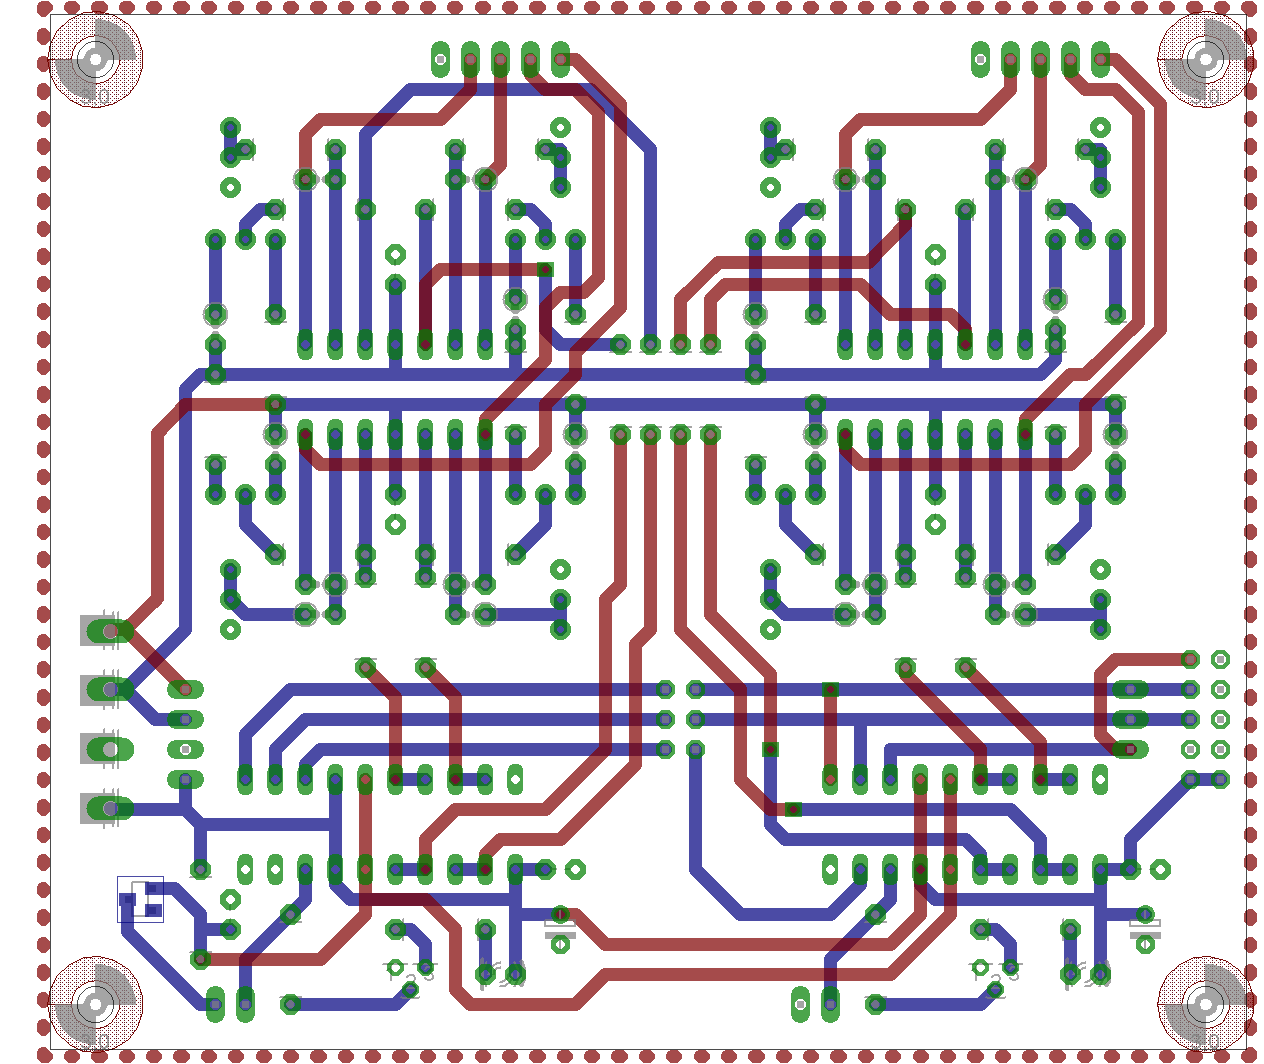 aout_v2_board_traces.png